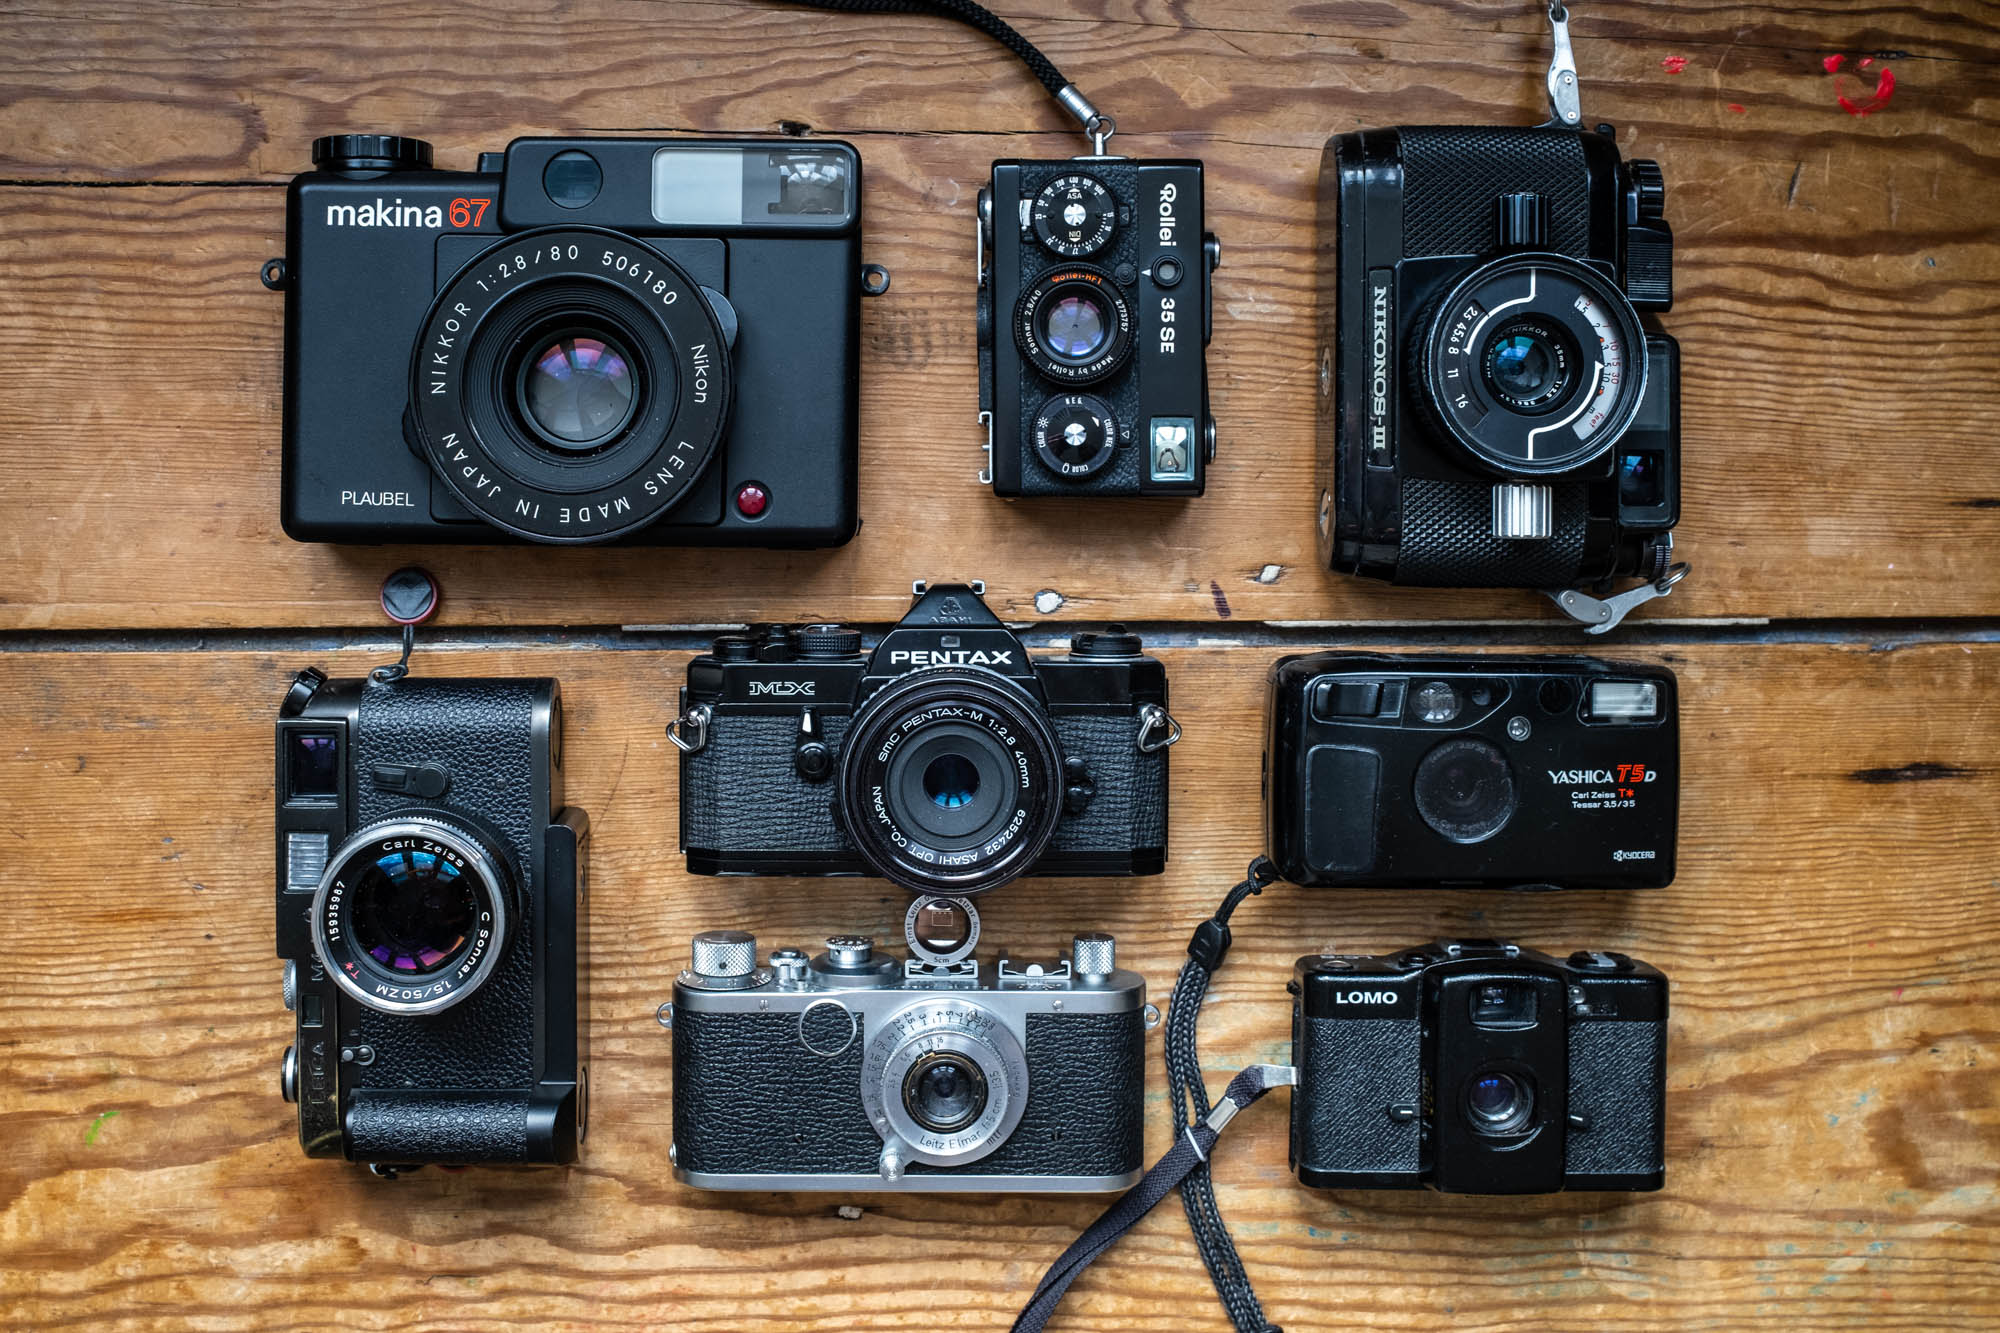 35mmc is a community-authored blog about photography and cameras, it's a wonderful source of knowledge and inspiration   Reviews – photography equipment and peripheral reviews.  Theory & Reflections – Photography theory…